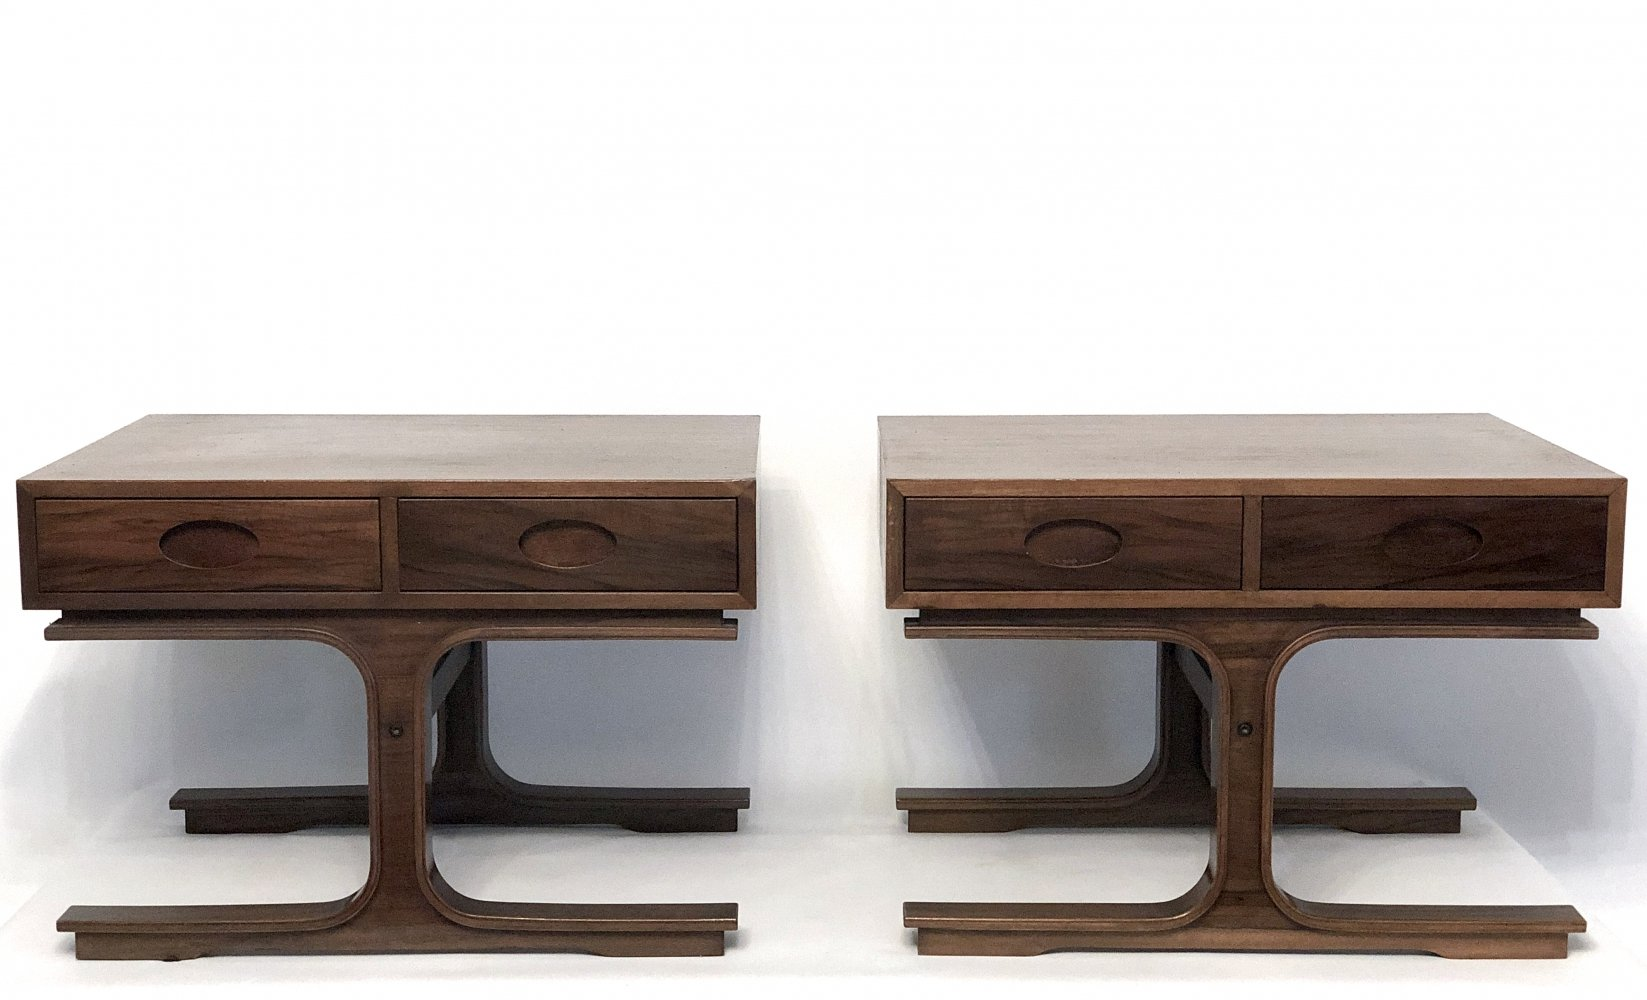 Set of two Signed wooden night-tables by Gianfranco Frattini for Bernini, 1950s